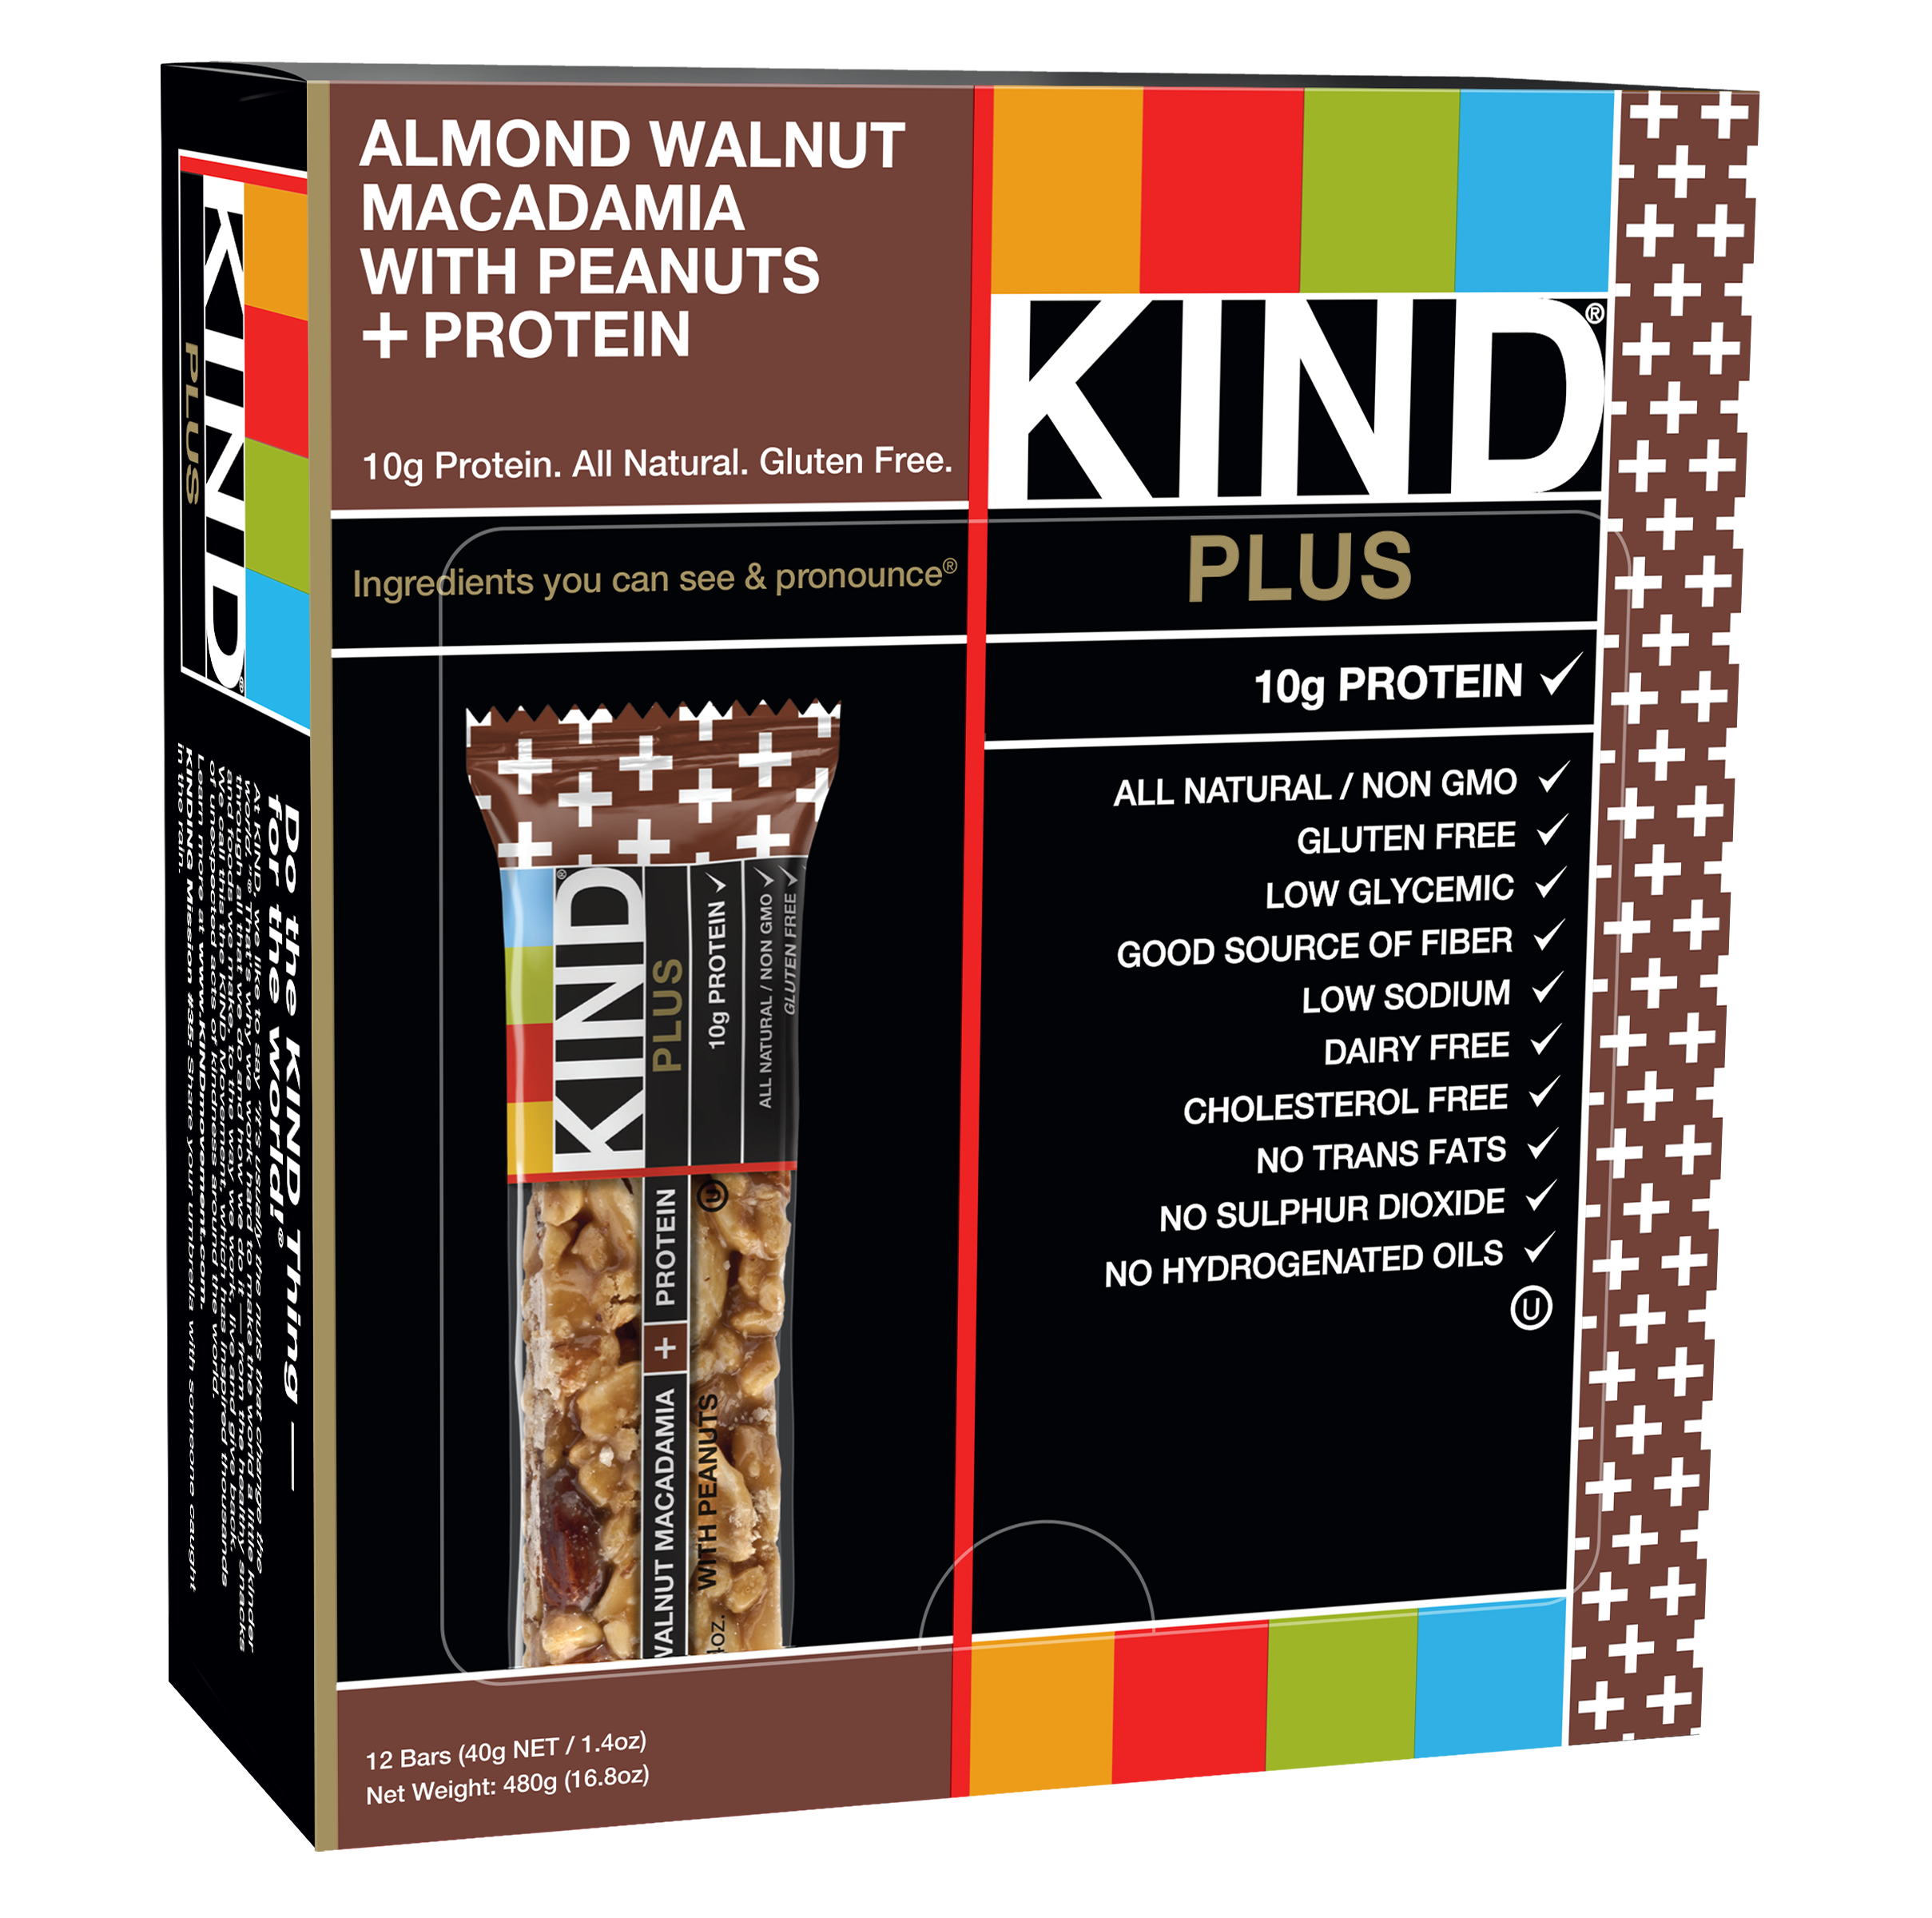 KIND Bars, Almond Walnut Macadamia with Peanuts + 10g Protein, 12 Bars, Gluten Free